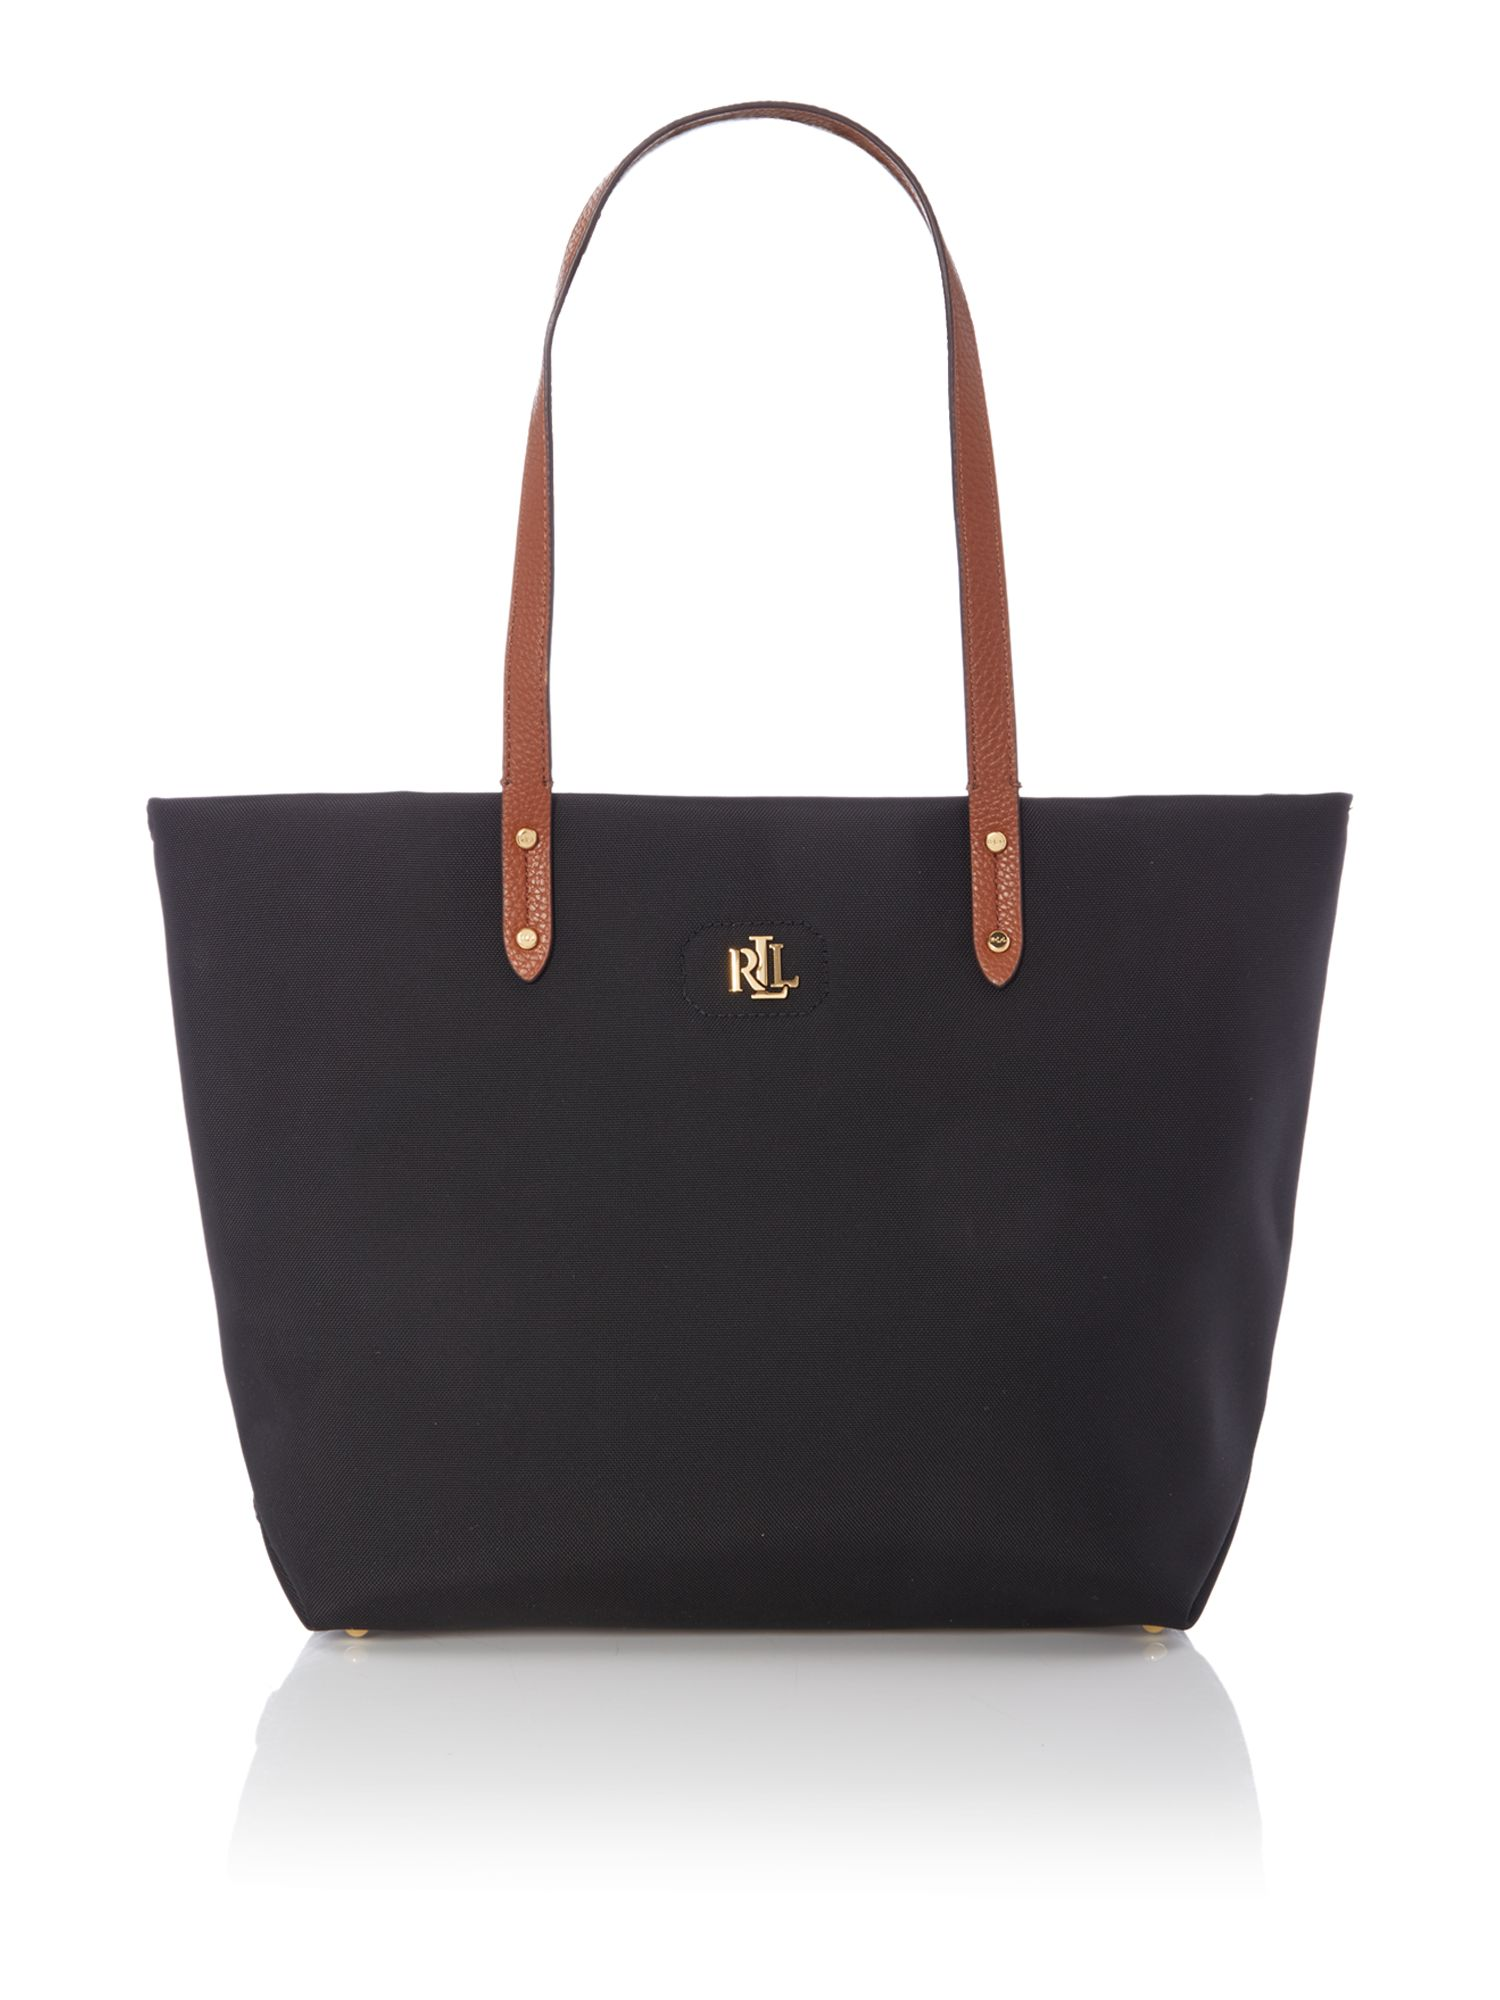 Lauren Ralph Lauren Bainbridge Black Large Tote Bag - House of Fraser